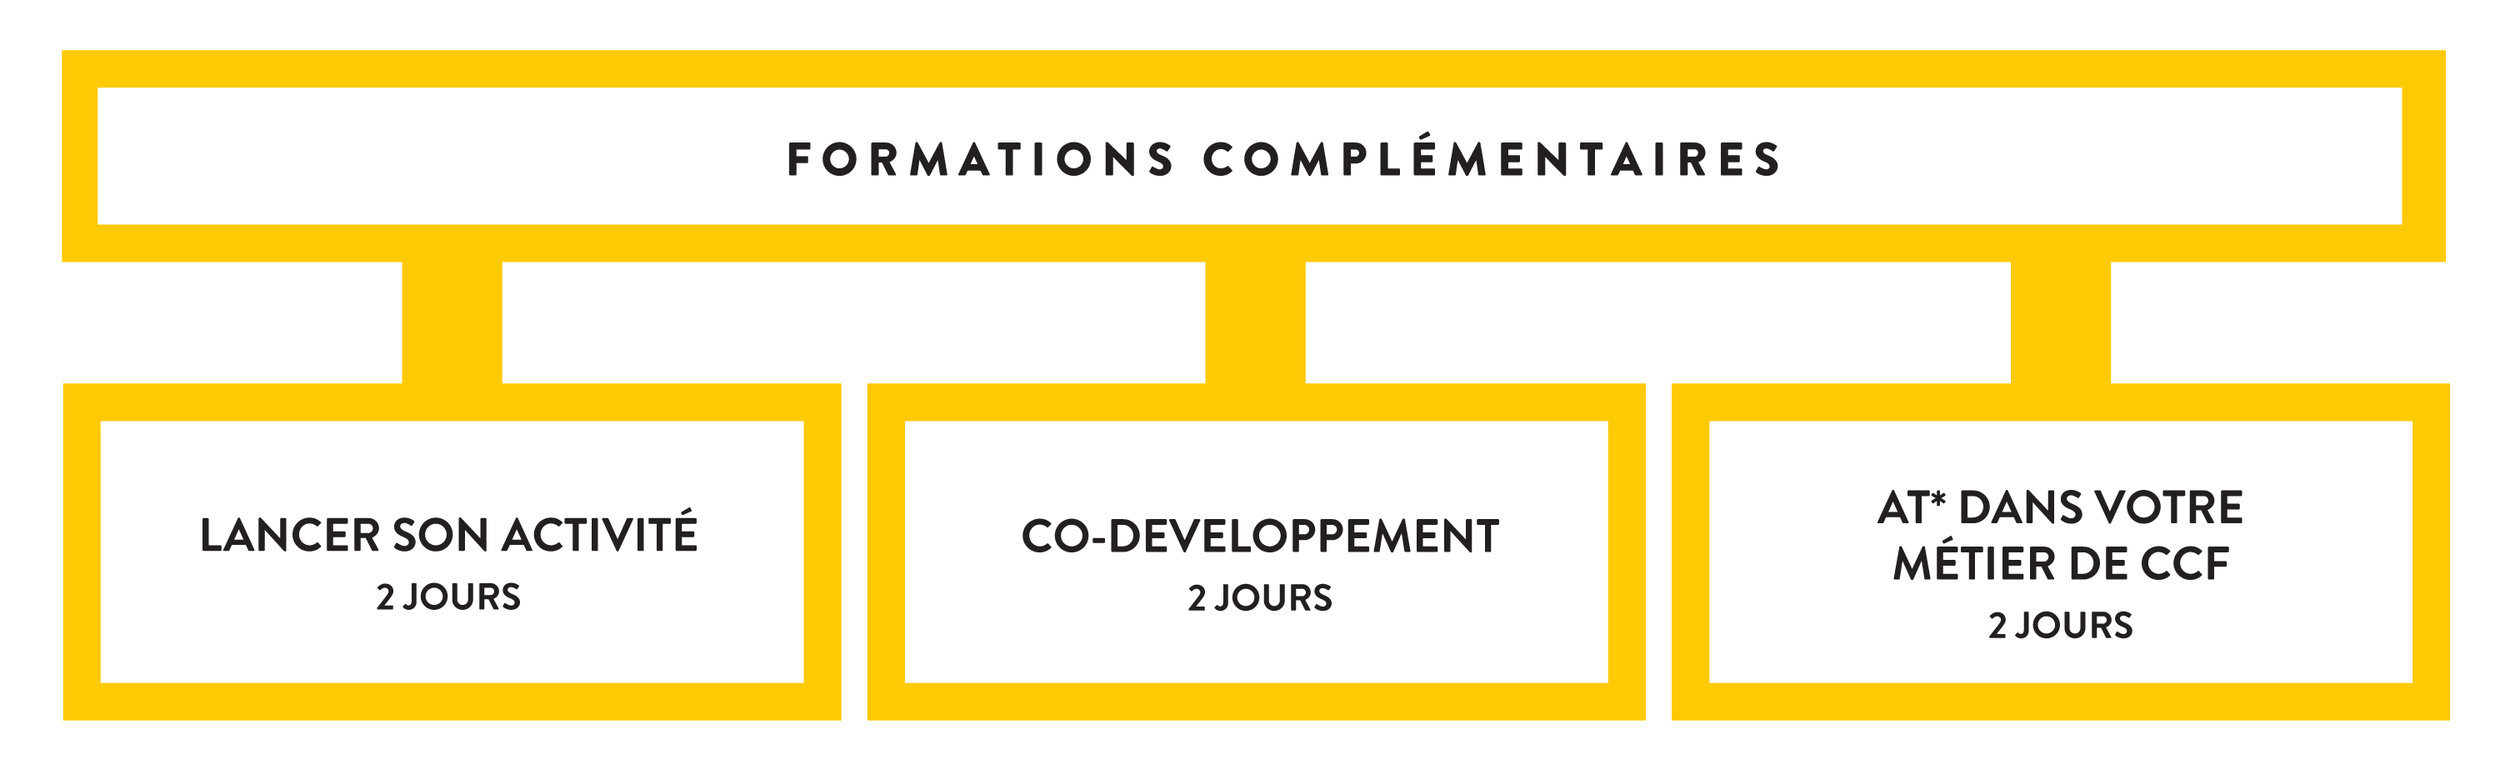 Formations-complémentaires.jpg